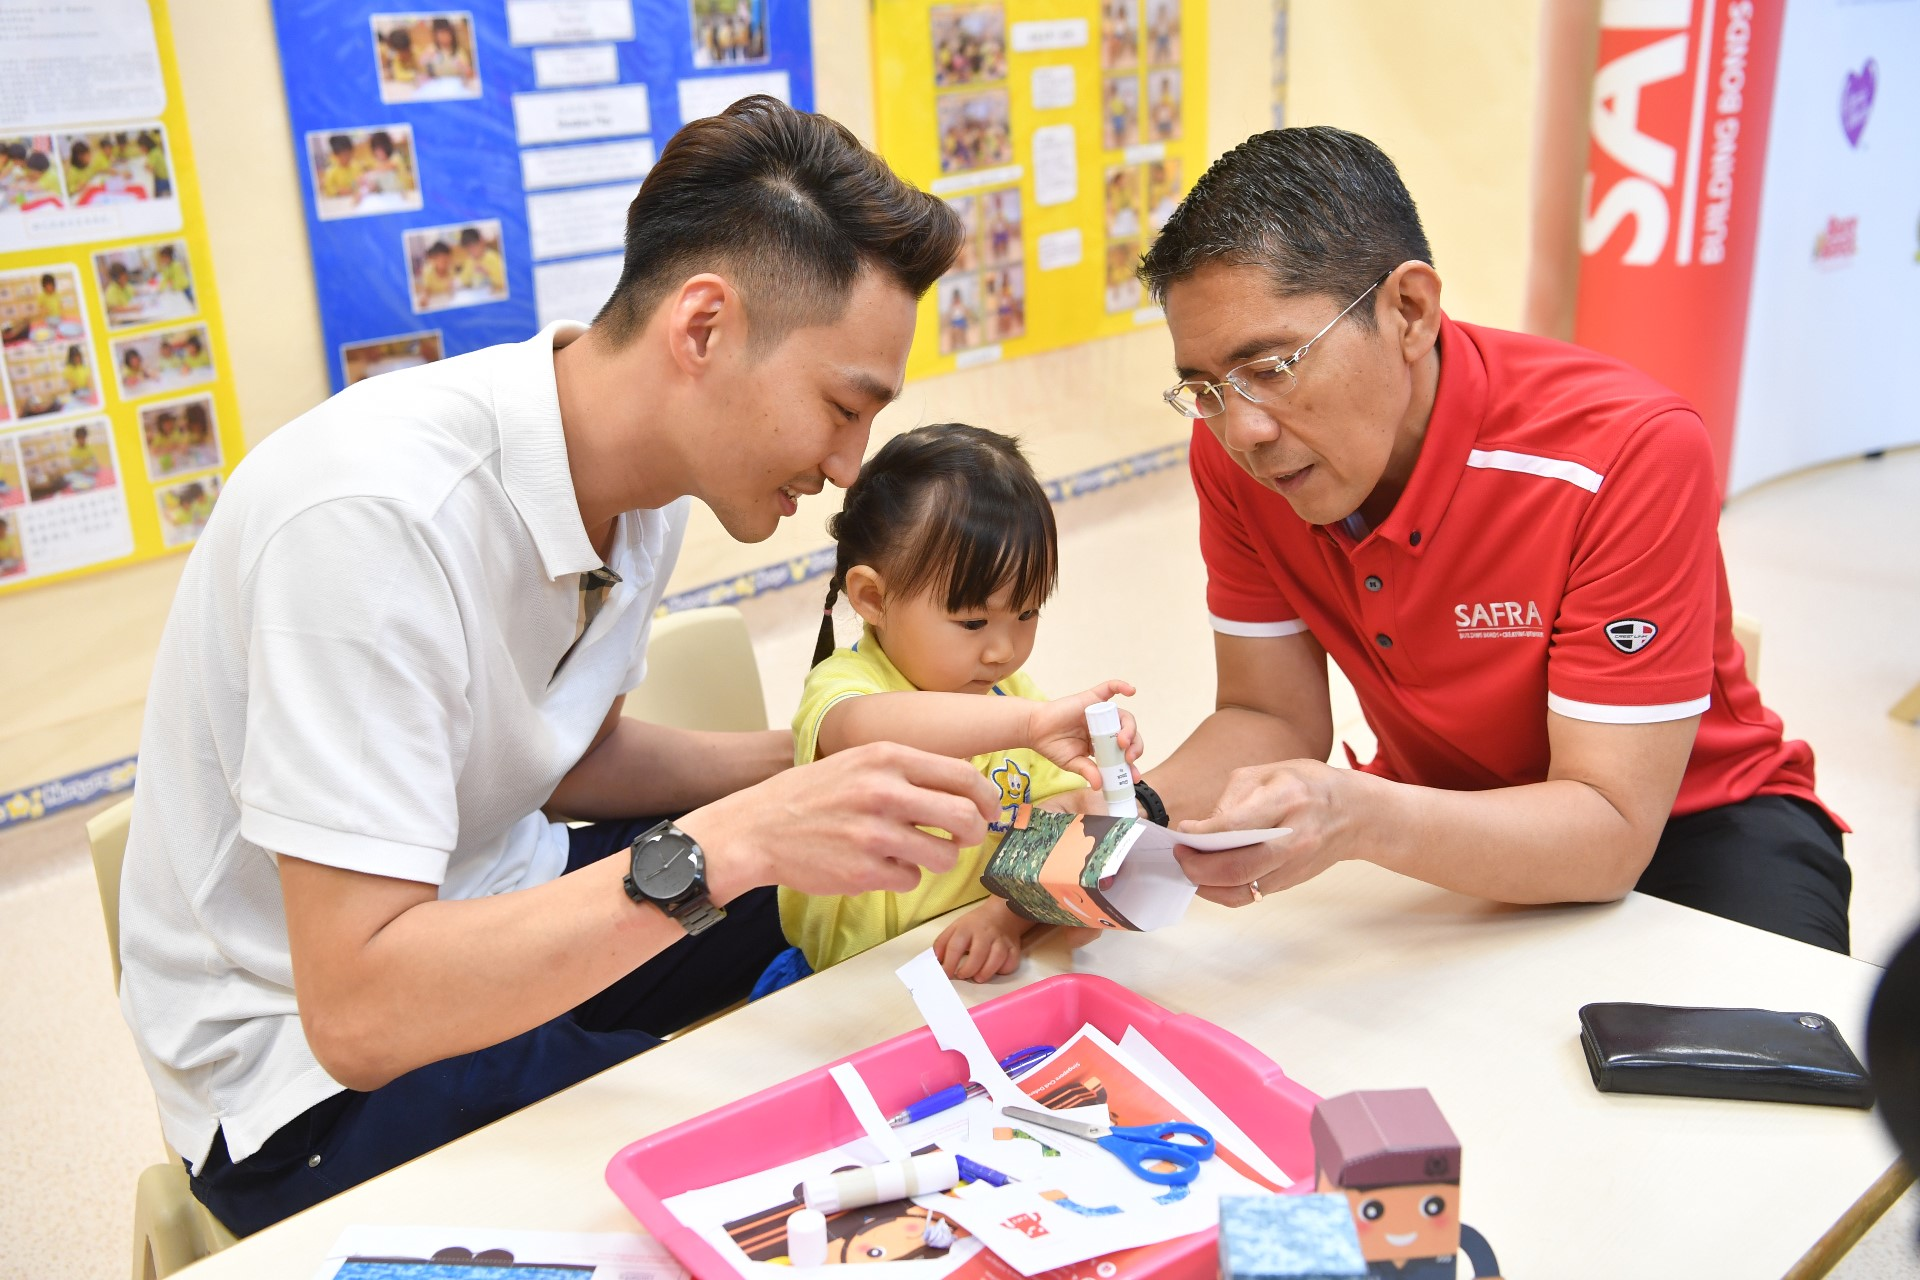 Papercraft messages from pre-schoolers, SAF Day deals to thank NSmen